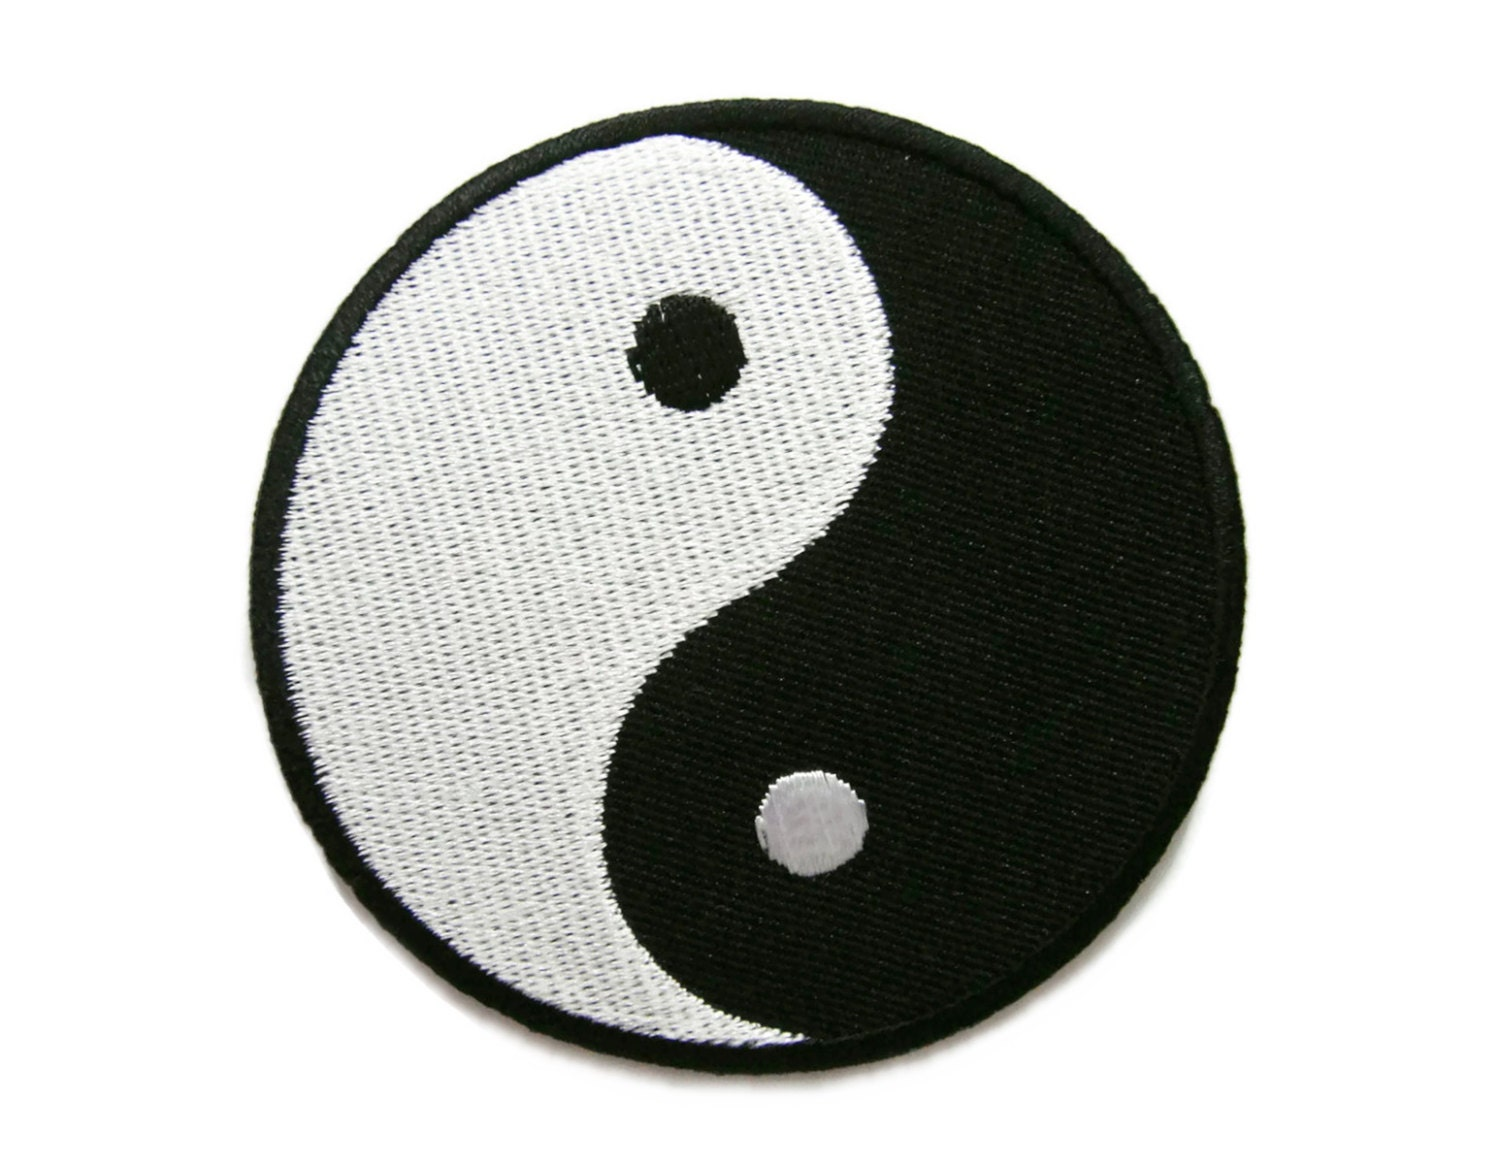 Black White Yin Yang Peace Sign Symbol Embroidered Applique Etsy